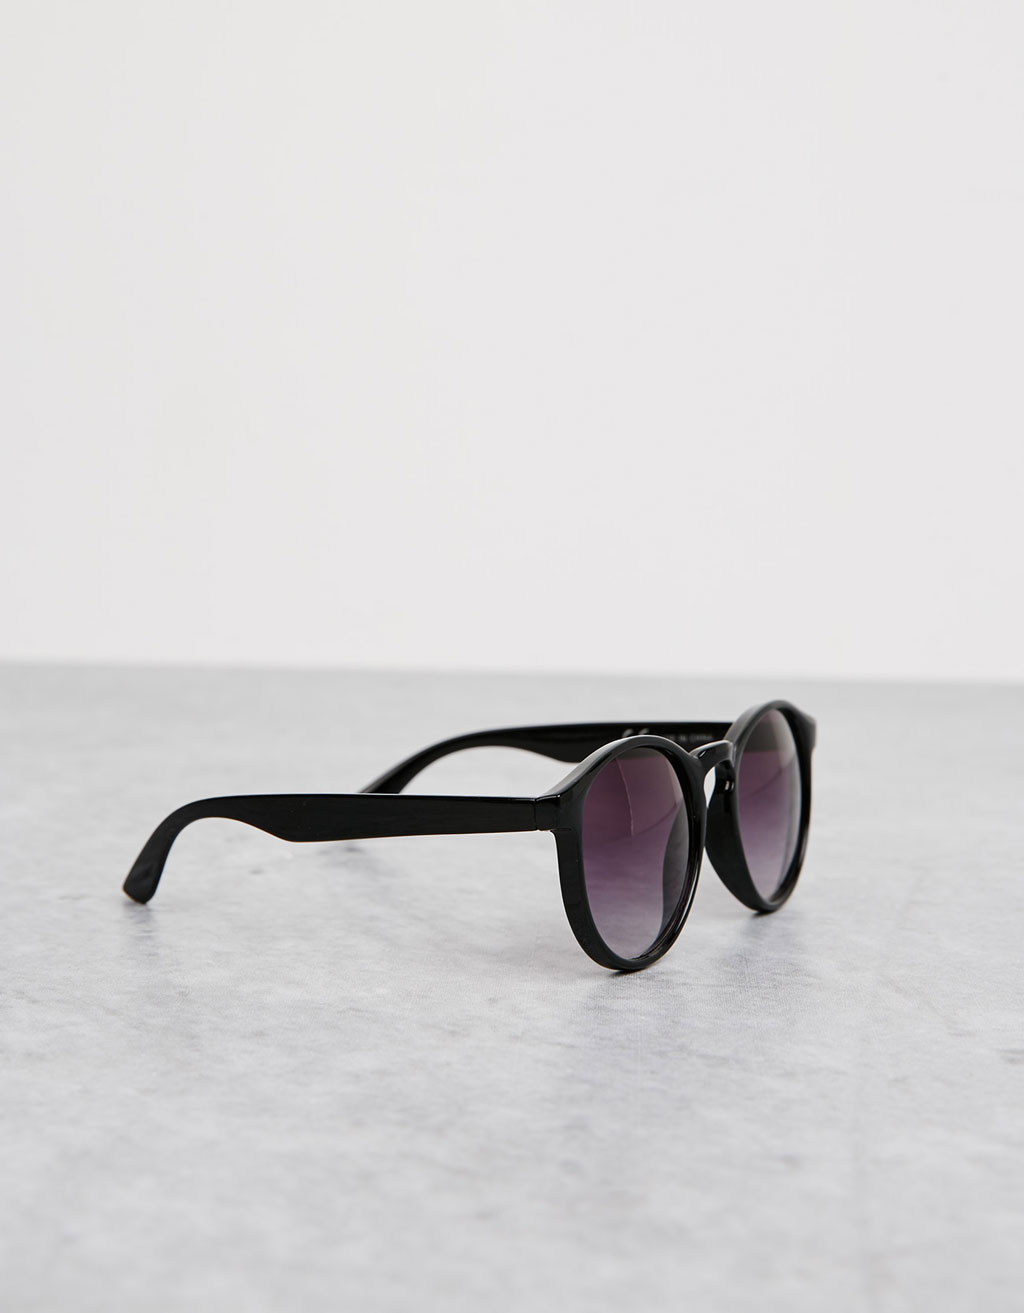 Round black sunglasses with dégradé lenses